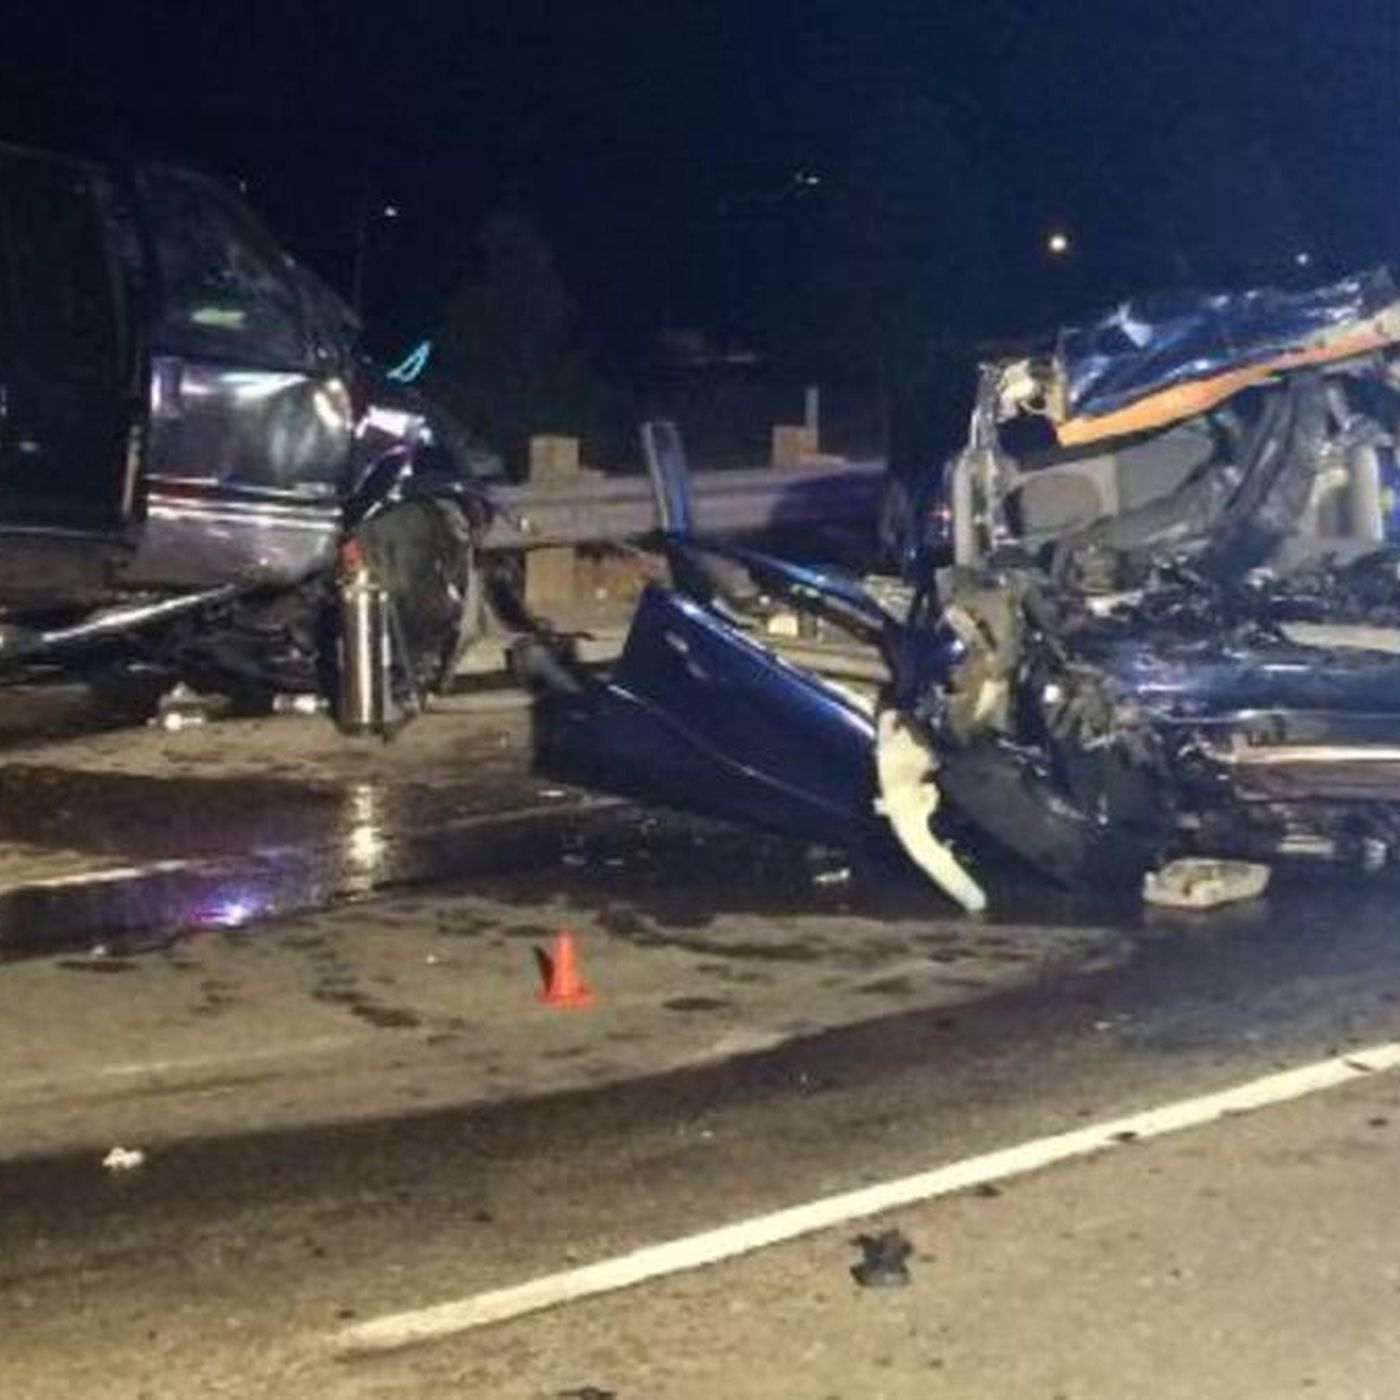 Devastating loss': Two 18-year-olds killed in head-on crash